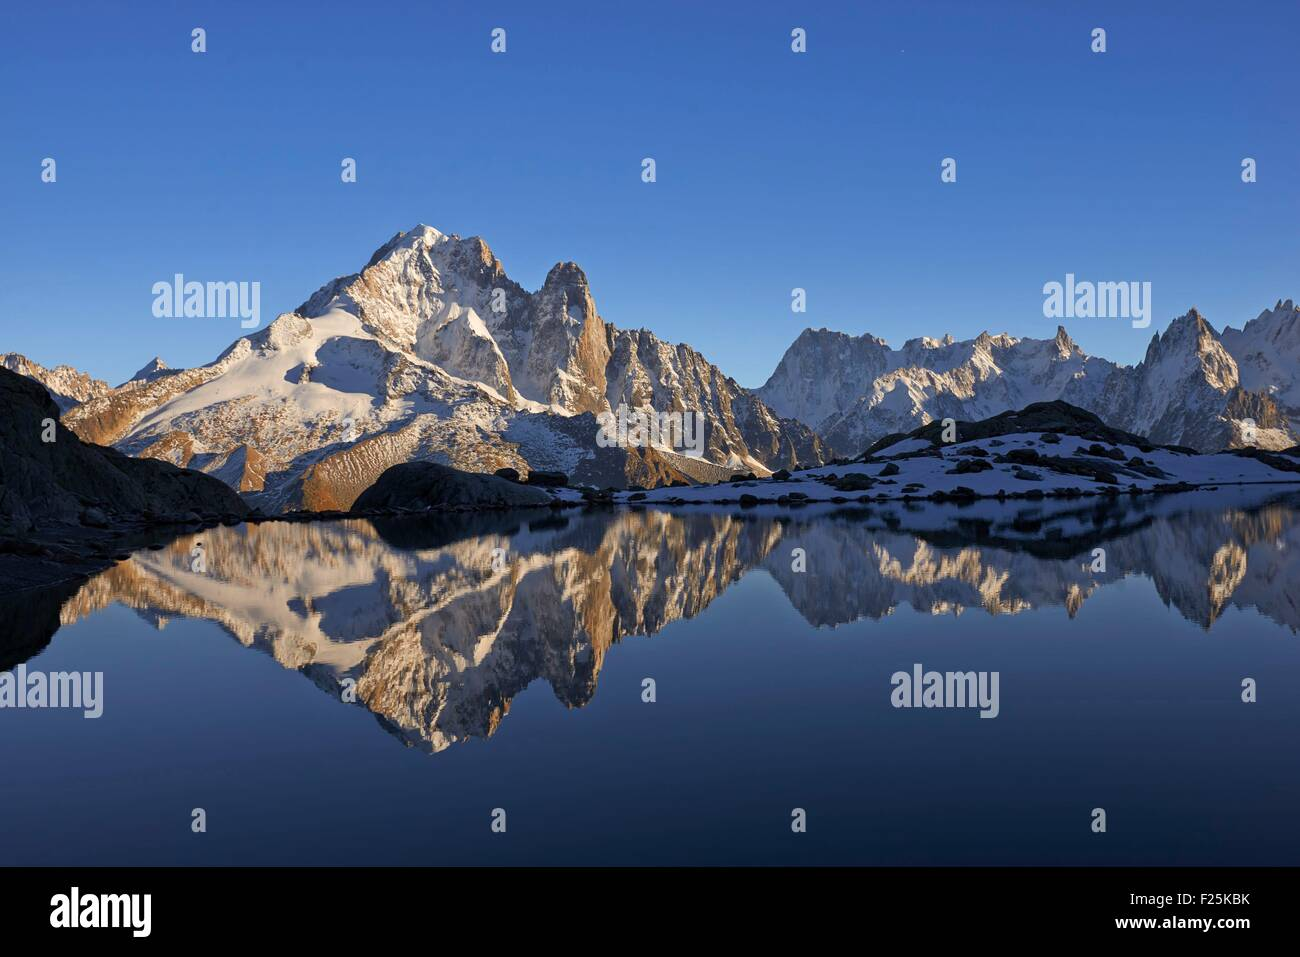 France, Haute Savoie, Chamonix, aiguille Verte (4122m) at sunrise from lac Blanc, Mont Blanc range Stock Photo